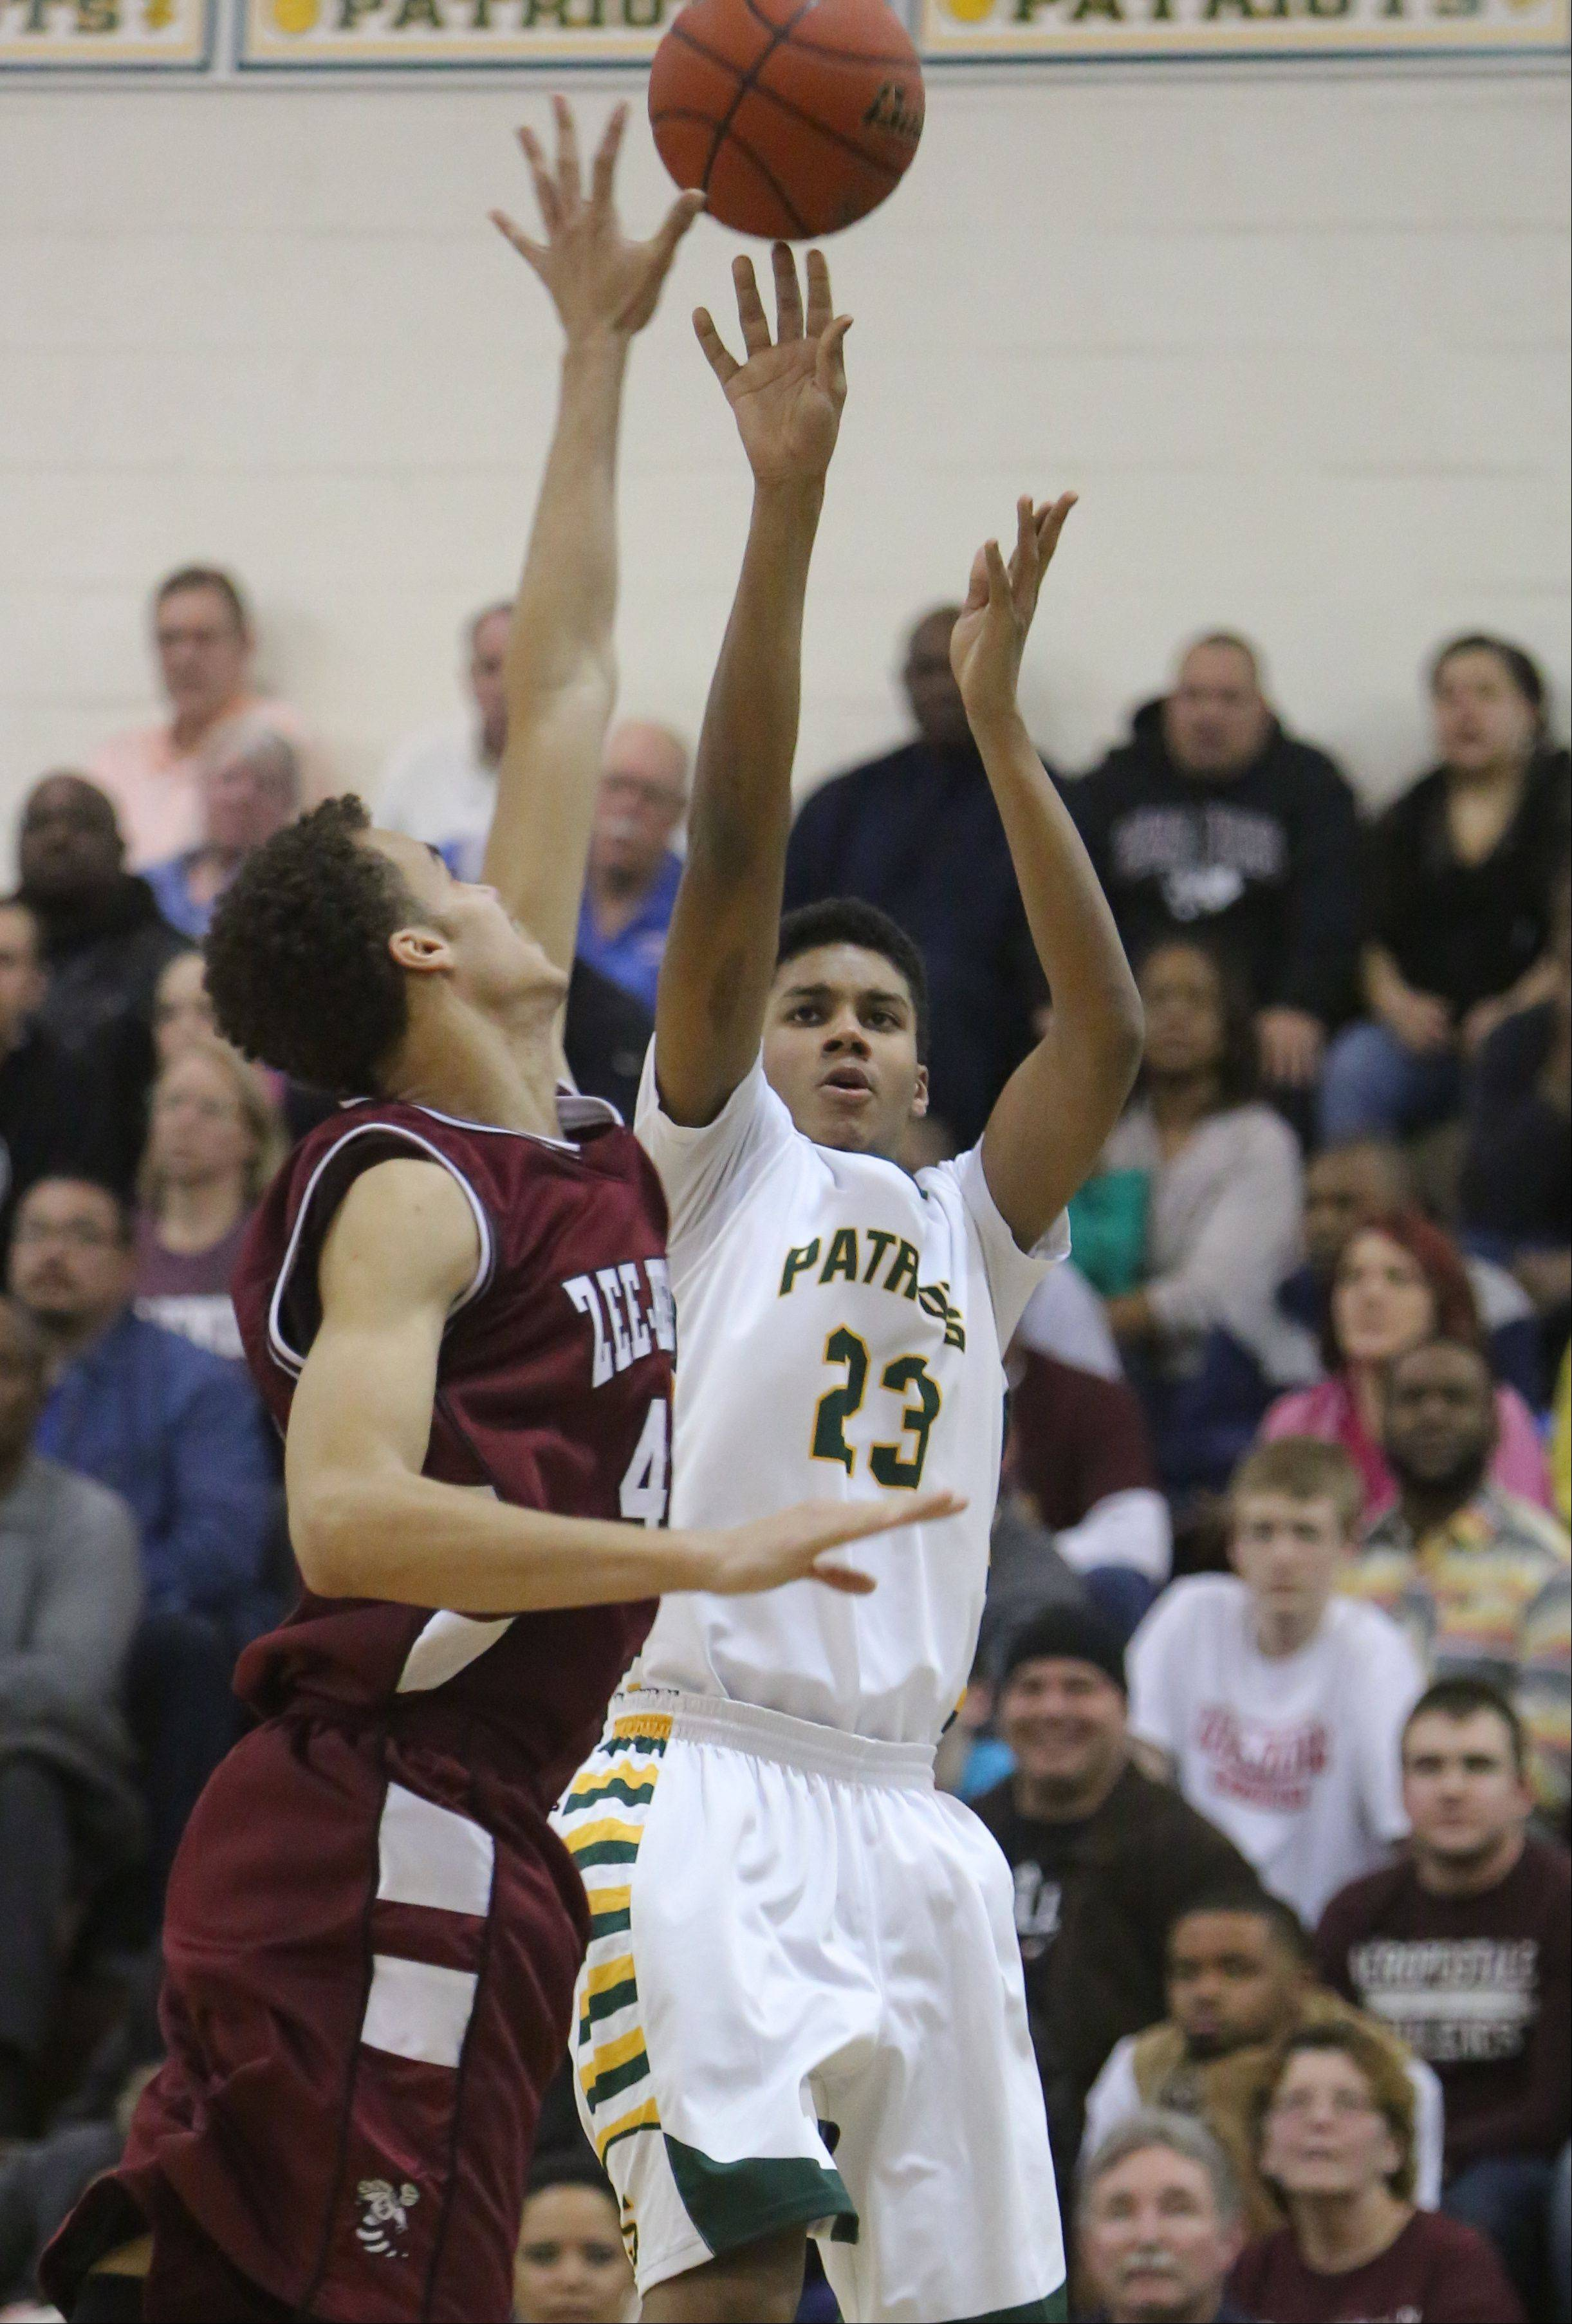 Images from the Zion-Benton at Stevenson boys basketball game on Friday, February 7 in Lincolnshire.